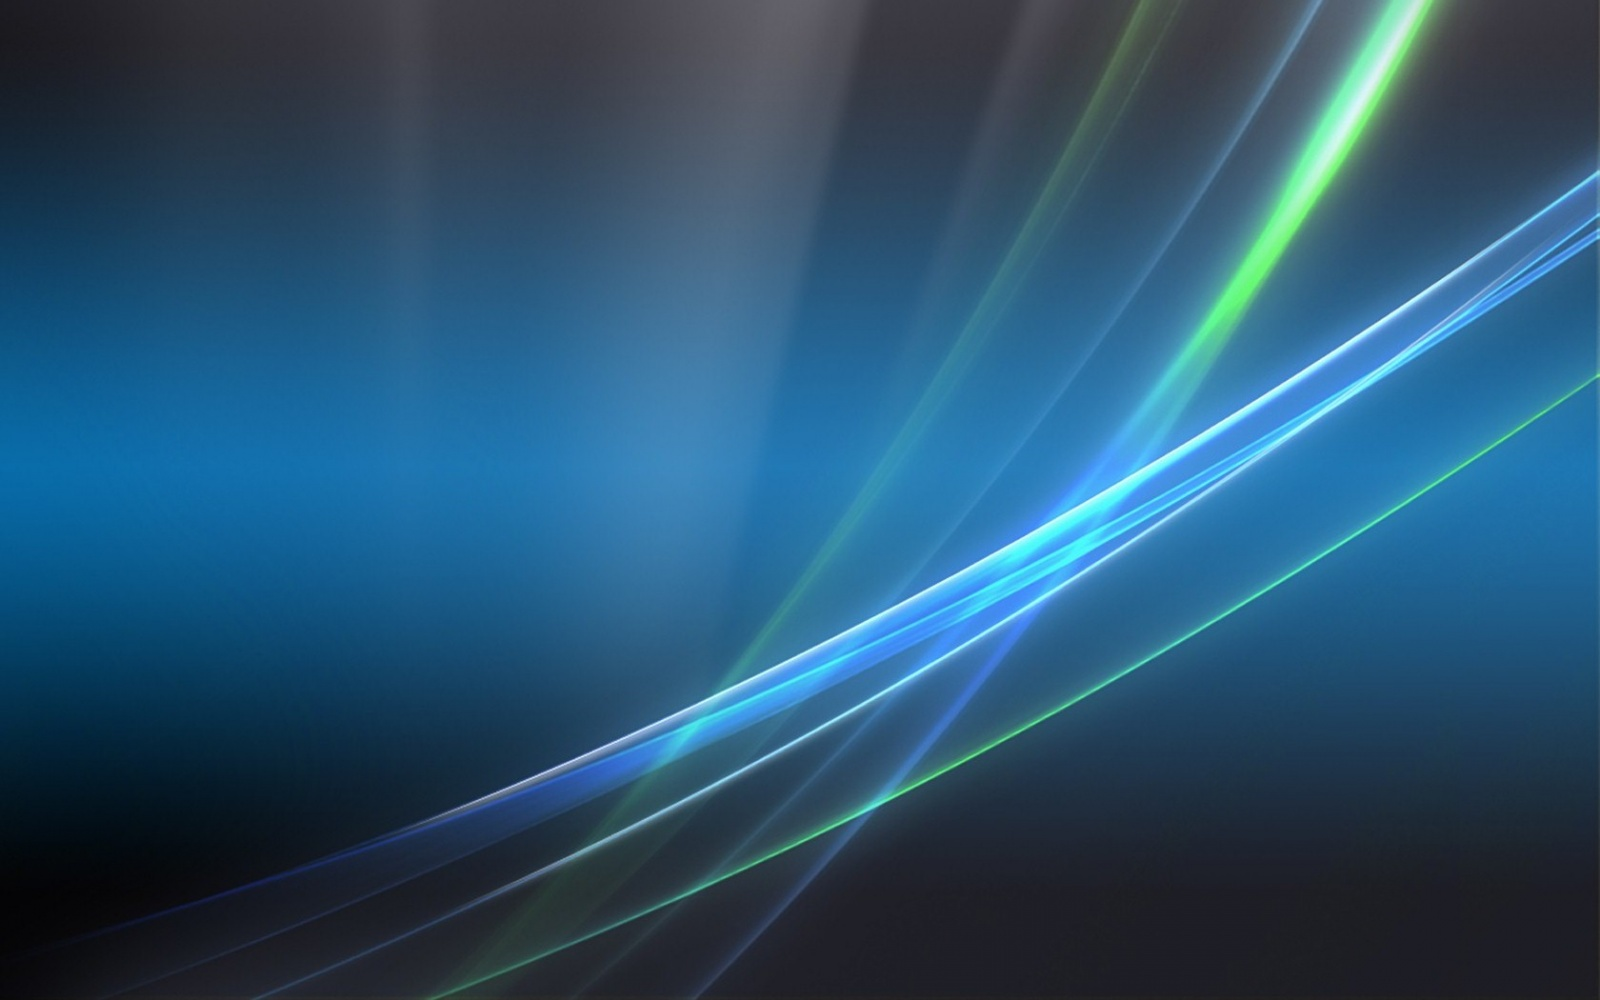 Windows 7 wallpapers hd nice wallpapers - Hd wallpapers for pc windows ...